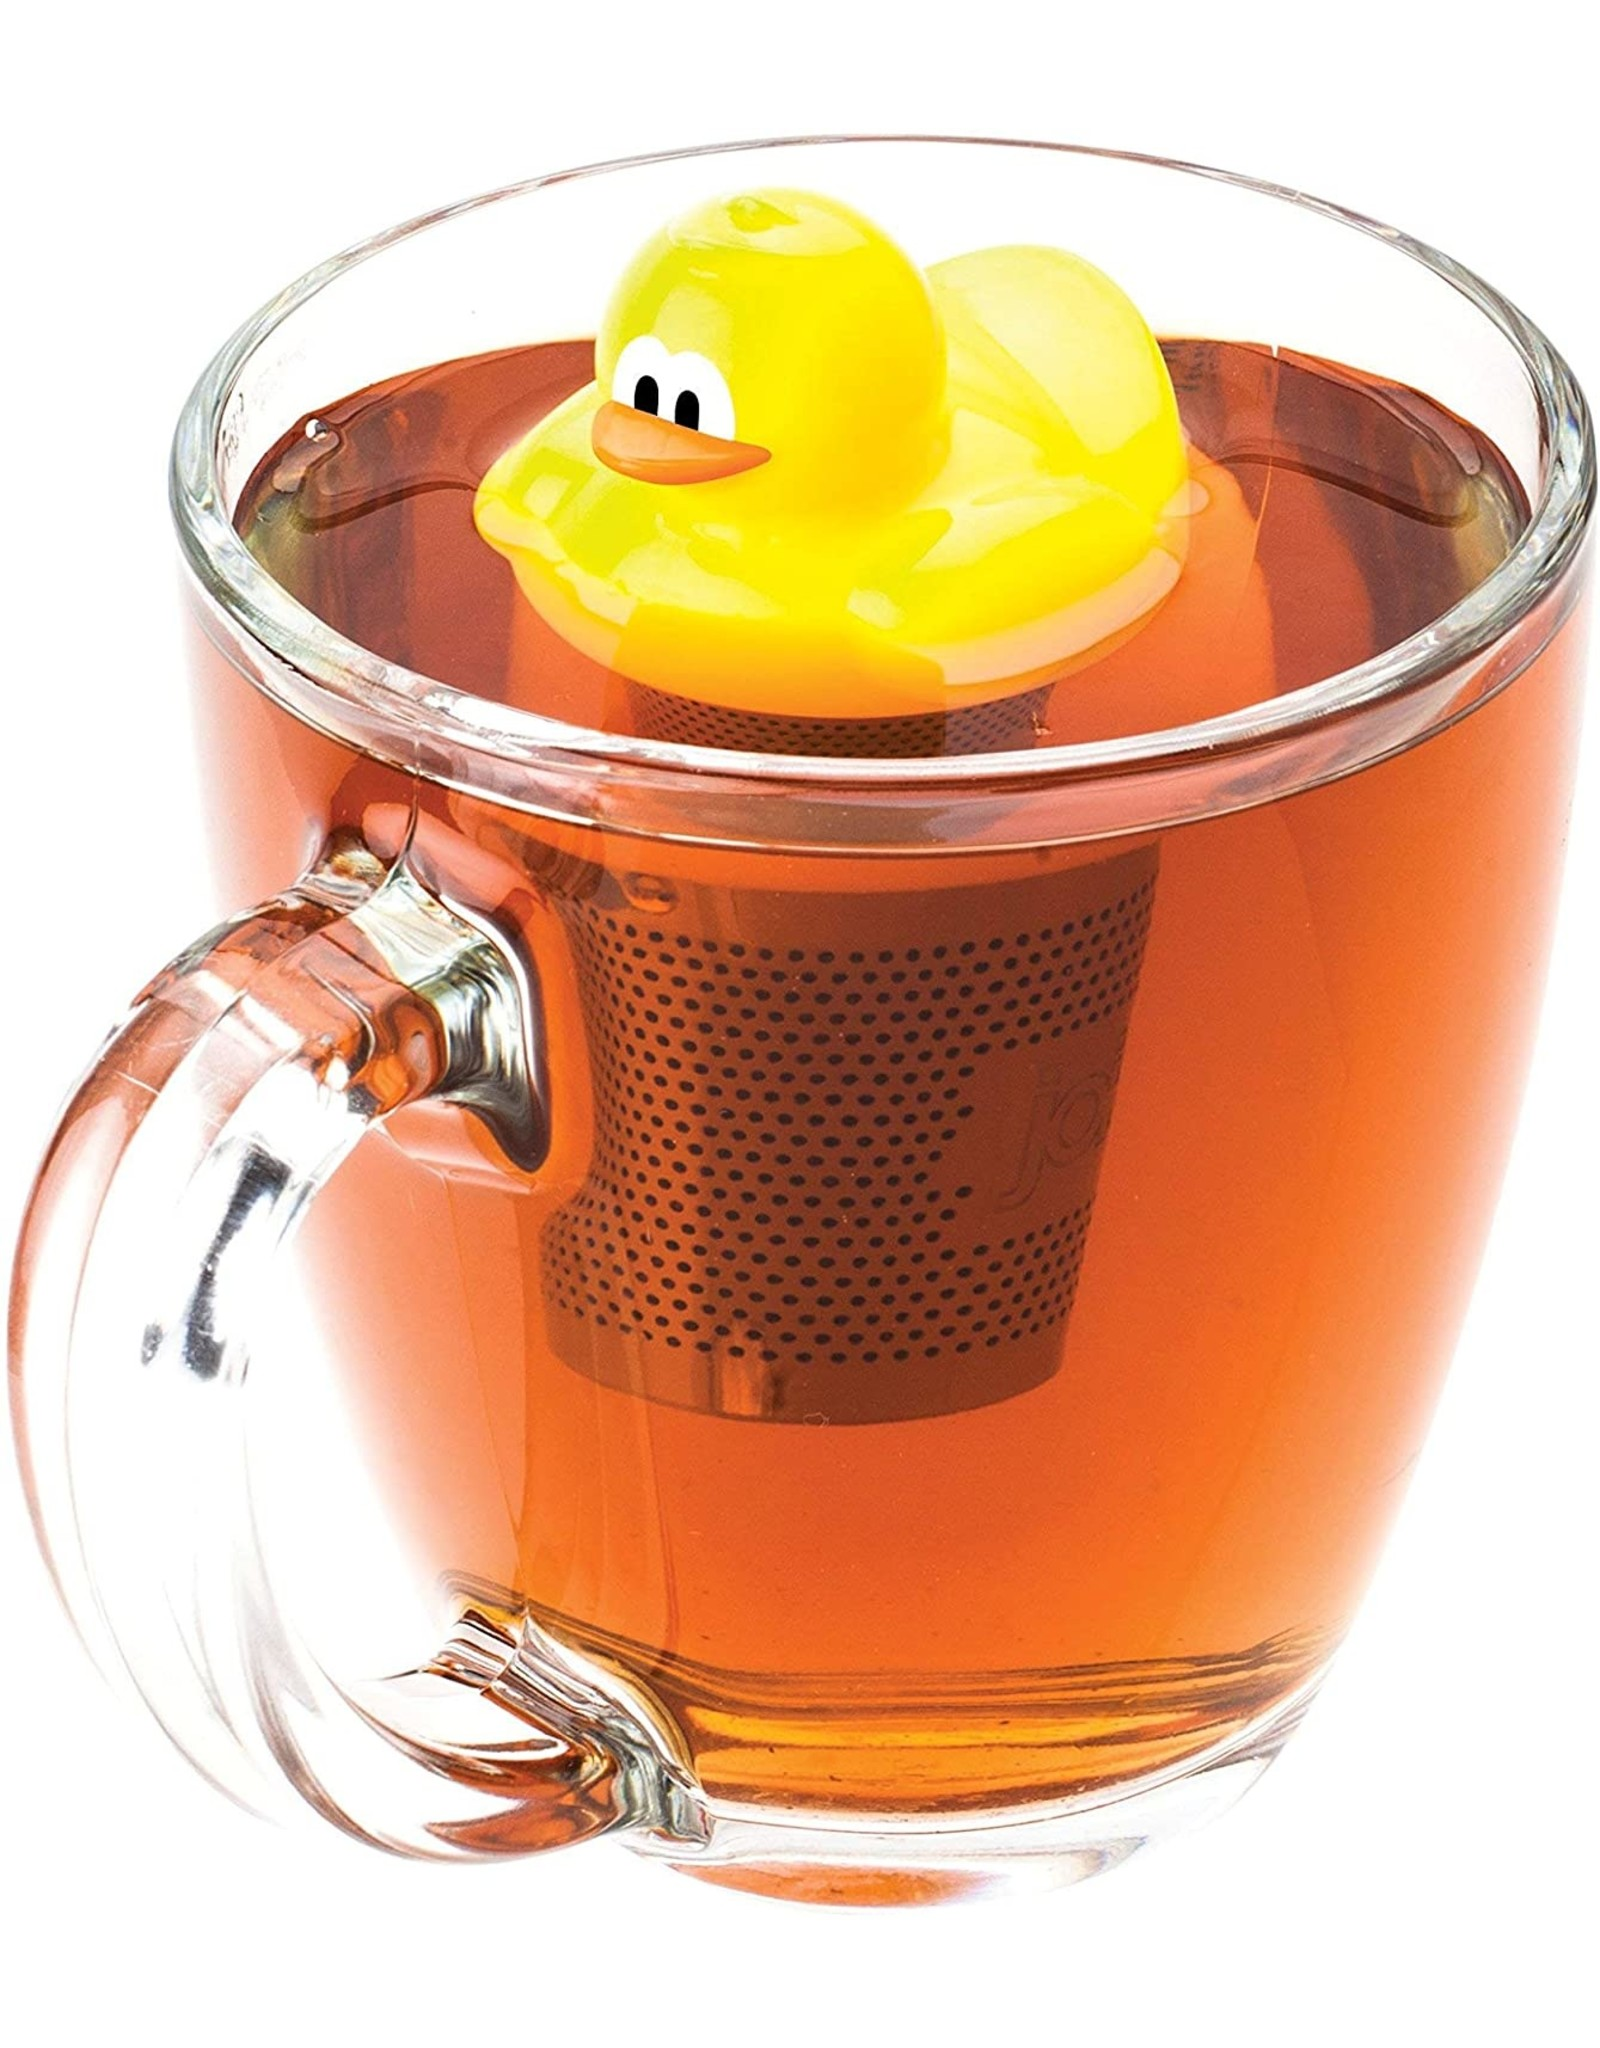 Quack Floating Rubber Duck Tea Infuser